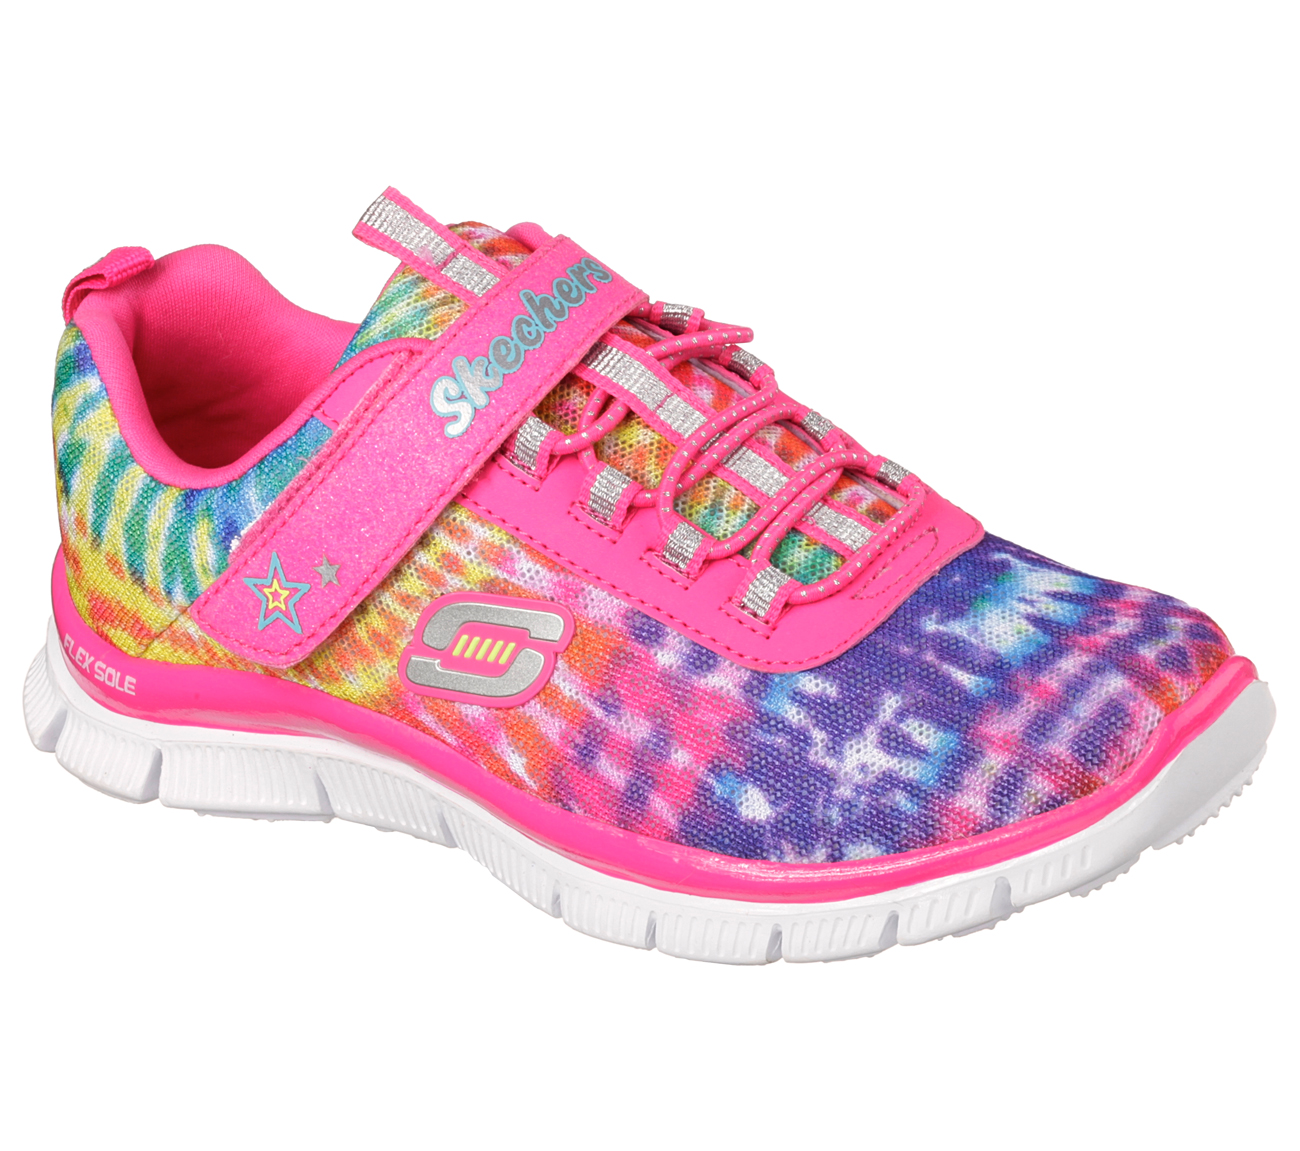 First-Rate Style Girls Running Shoes Skechers Grey Pink Skech Apeal It's Electric Toddler Youth Honorable Latest Here To skuzcalsase.ml Pink Running Shoes Skechers Latest Here To Buy.